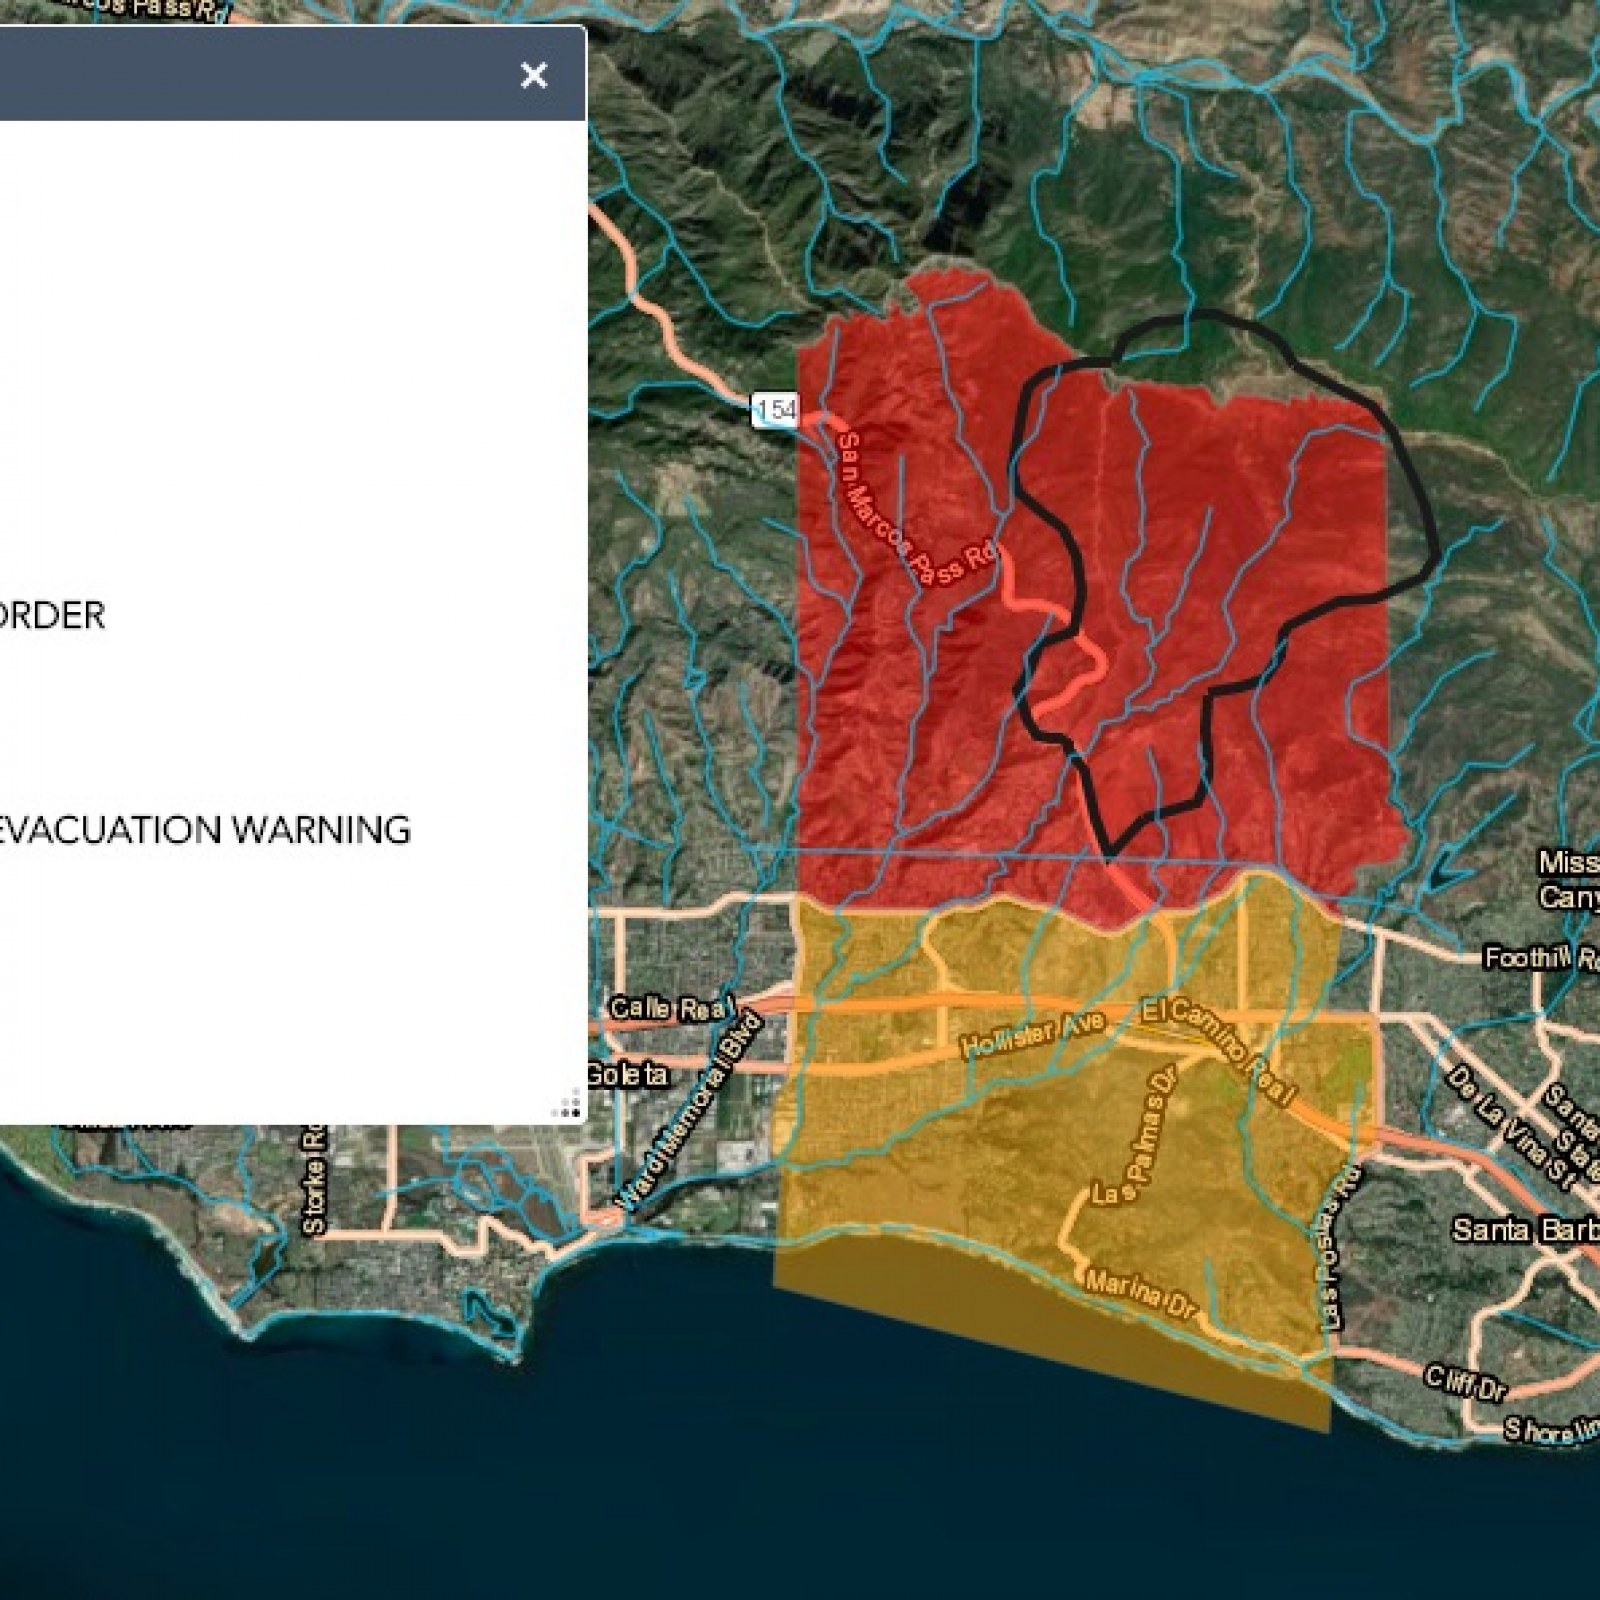 Santa Barbara Fire Update: Cave Fire Map Shows Evacuation ... on california coastal caves, california waterfalls map, old station ca map, california wood map, california wildlife map, california water cave, california lava tube caves, ohio cave map, california filming locations map, mn horse trail map, california oceans map, california roads map, universal studios in california map, california caves list, california tide pools map, california volcanoes map, california dunes map, denair california map, california caves open to the public, california streams map,